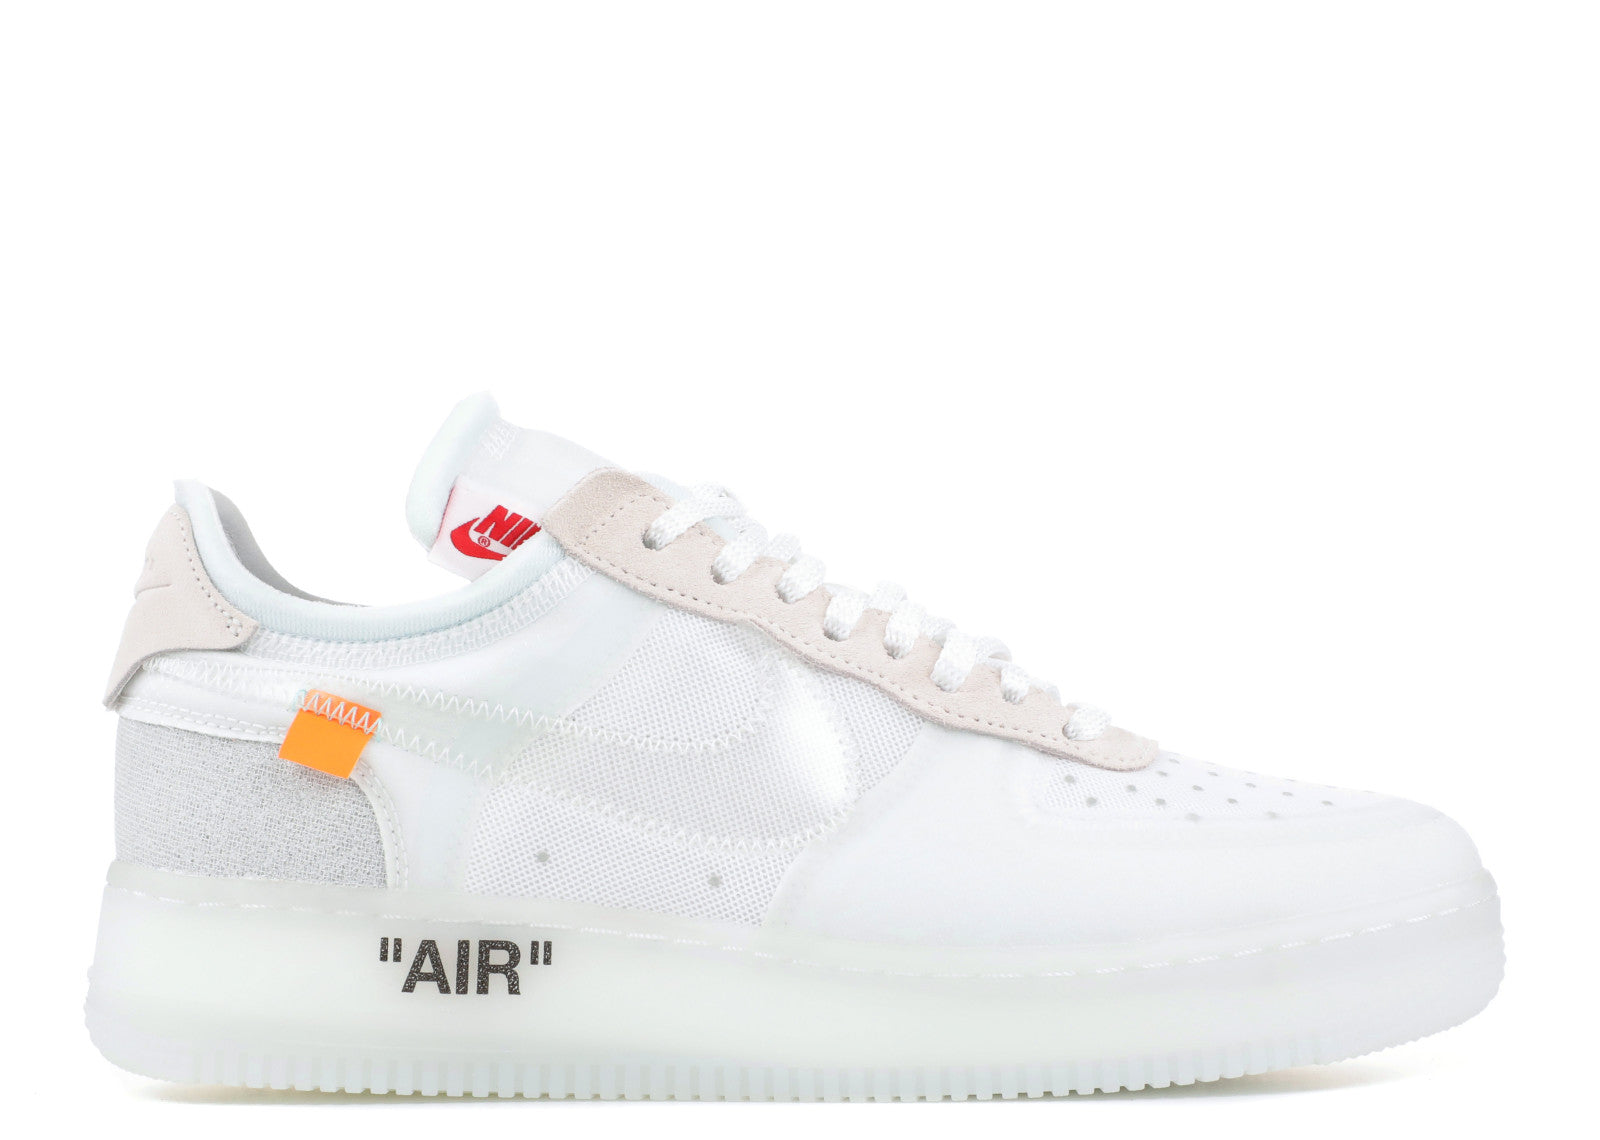 Off-White X Nike Air Force 1 Low 'The Ten'